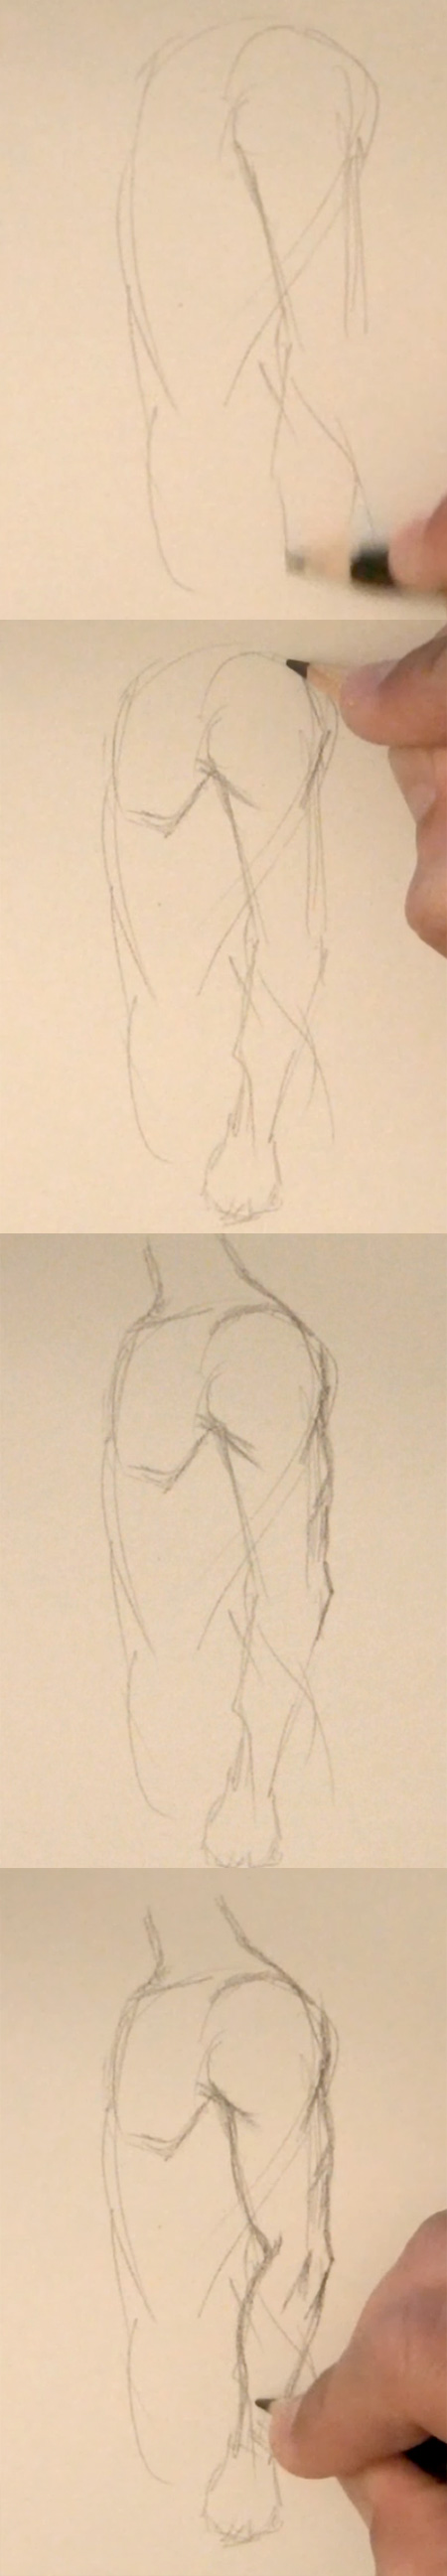 draw arm muscles side view step 1